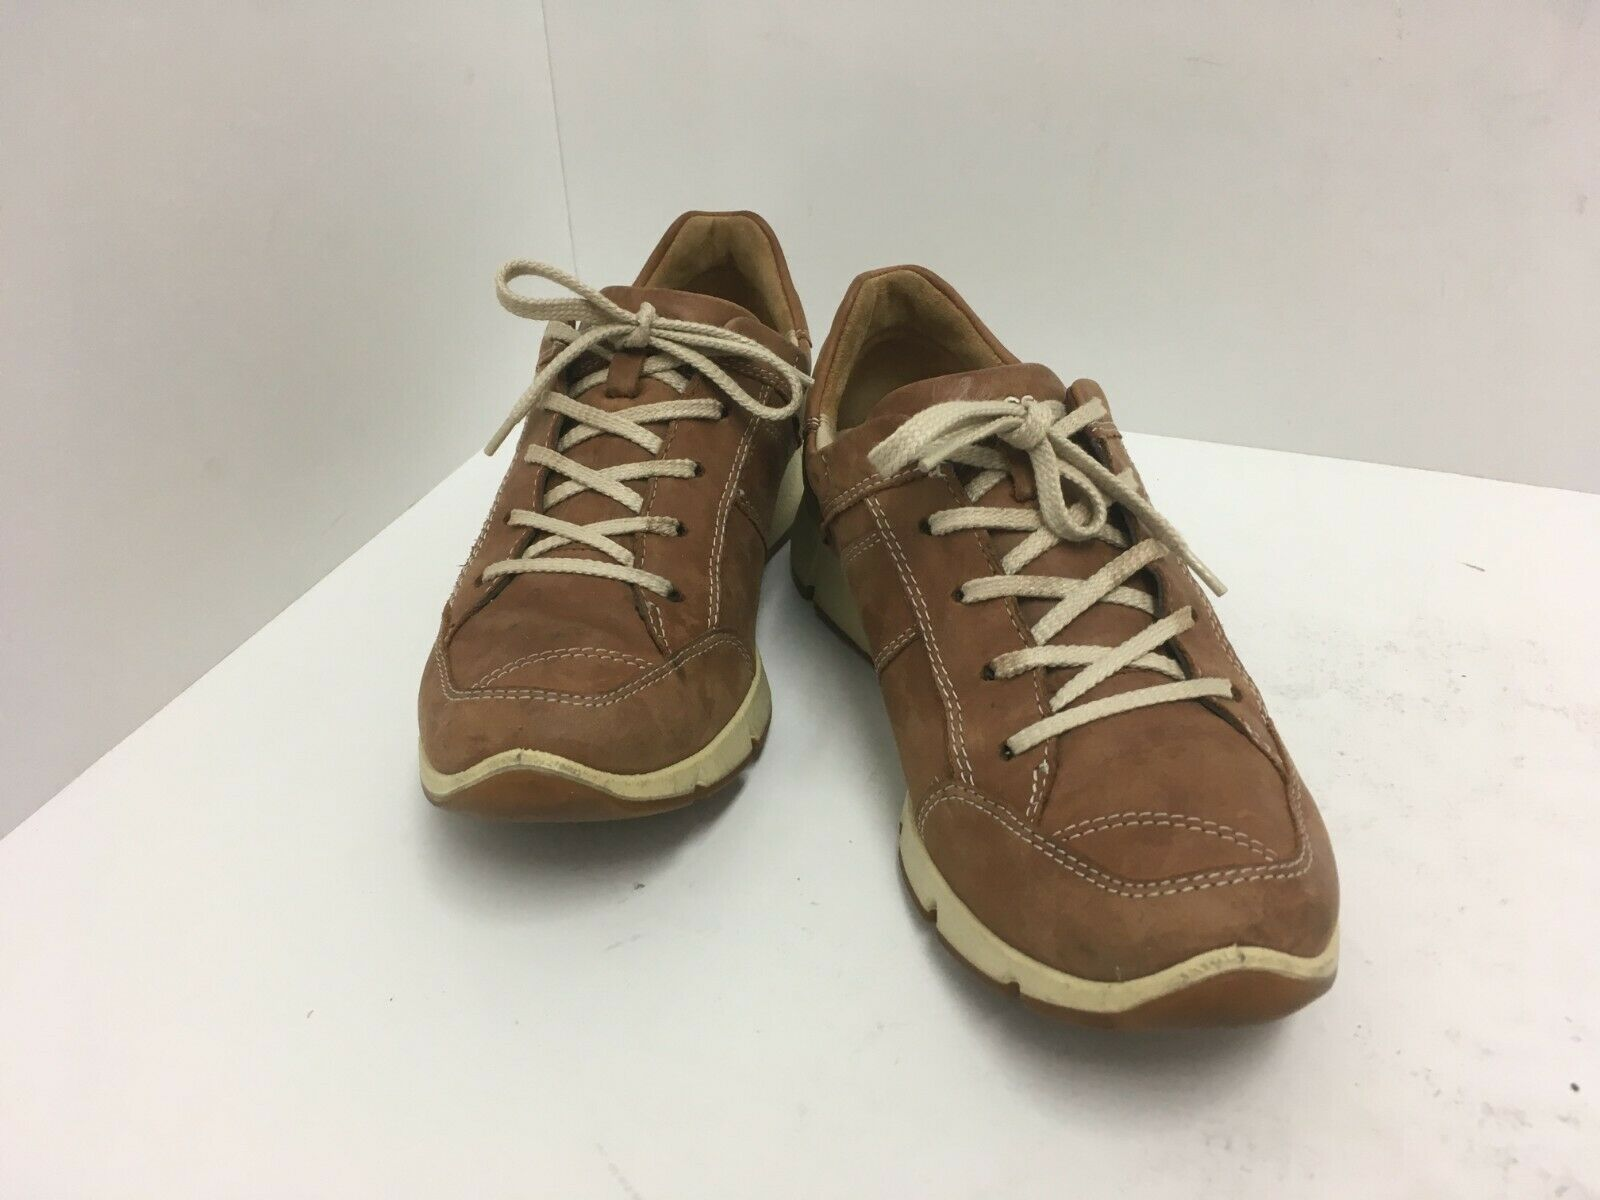 ECCO  WOMENS  WALKING  SHOES  LACE UP CASUAL  COMFORT  SIZE 36 US GUC